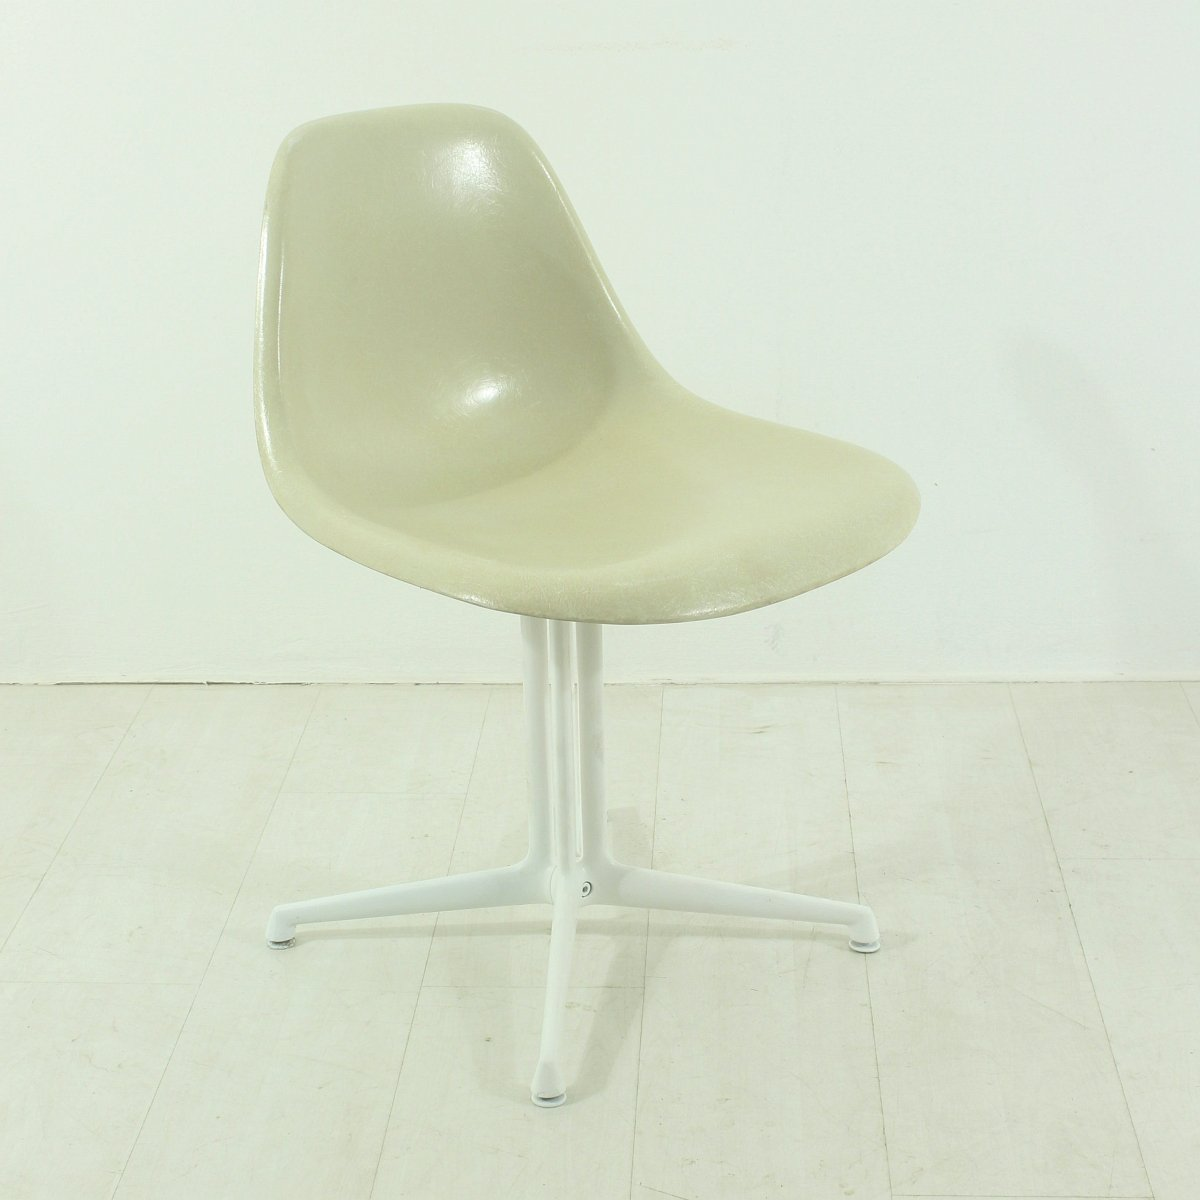 Offwhite la fonda chair by charles and ray eames for vitra for Chaise blanche eames